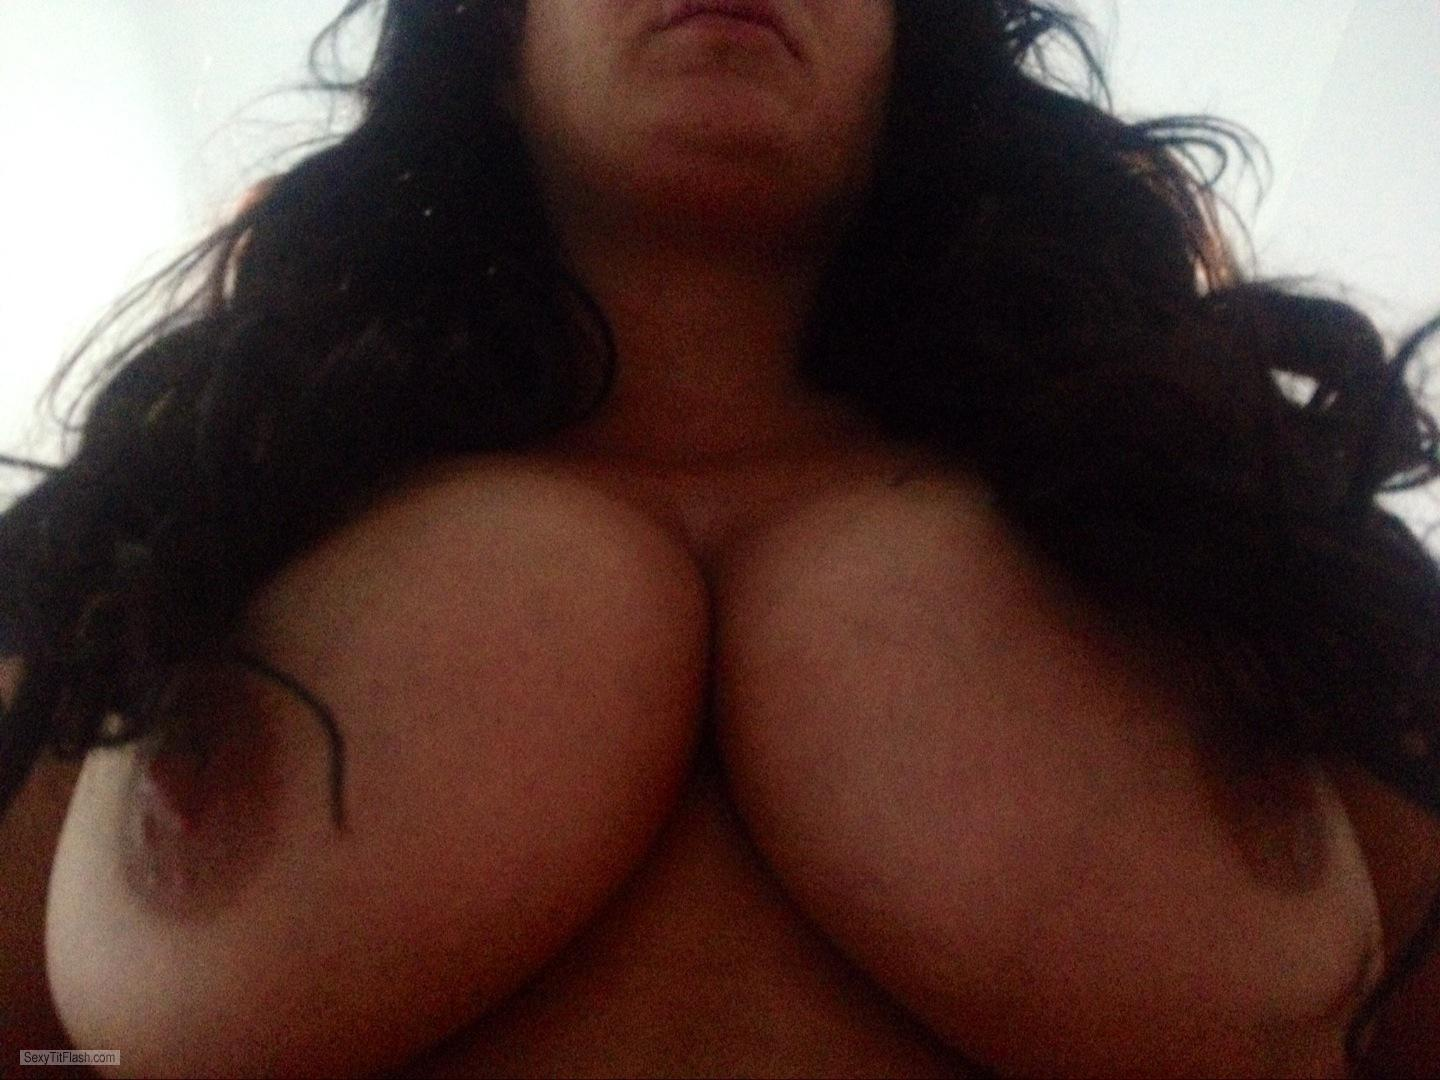 Tit Flash: My Very Big Tits (Selfie) - Sexy Wife from United Kingdom